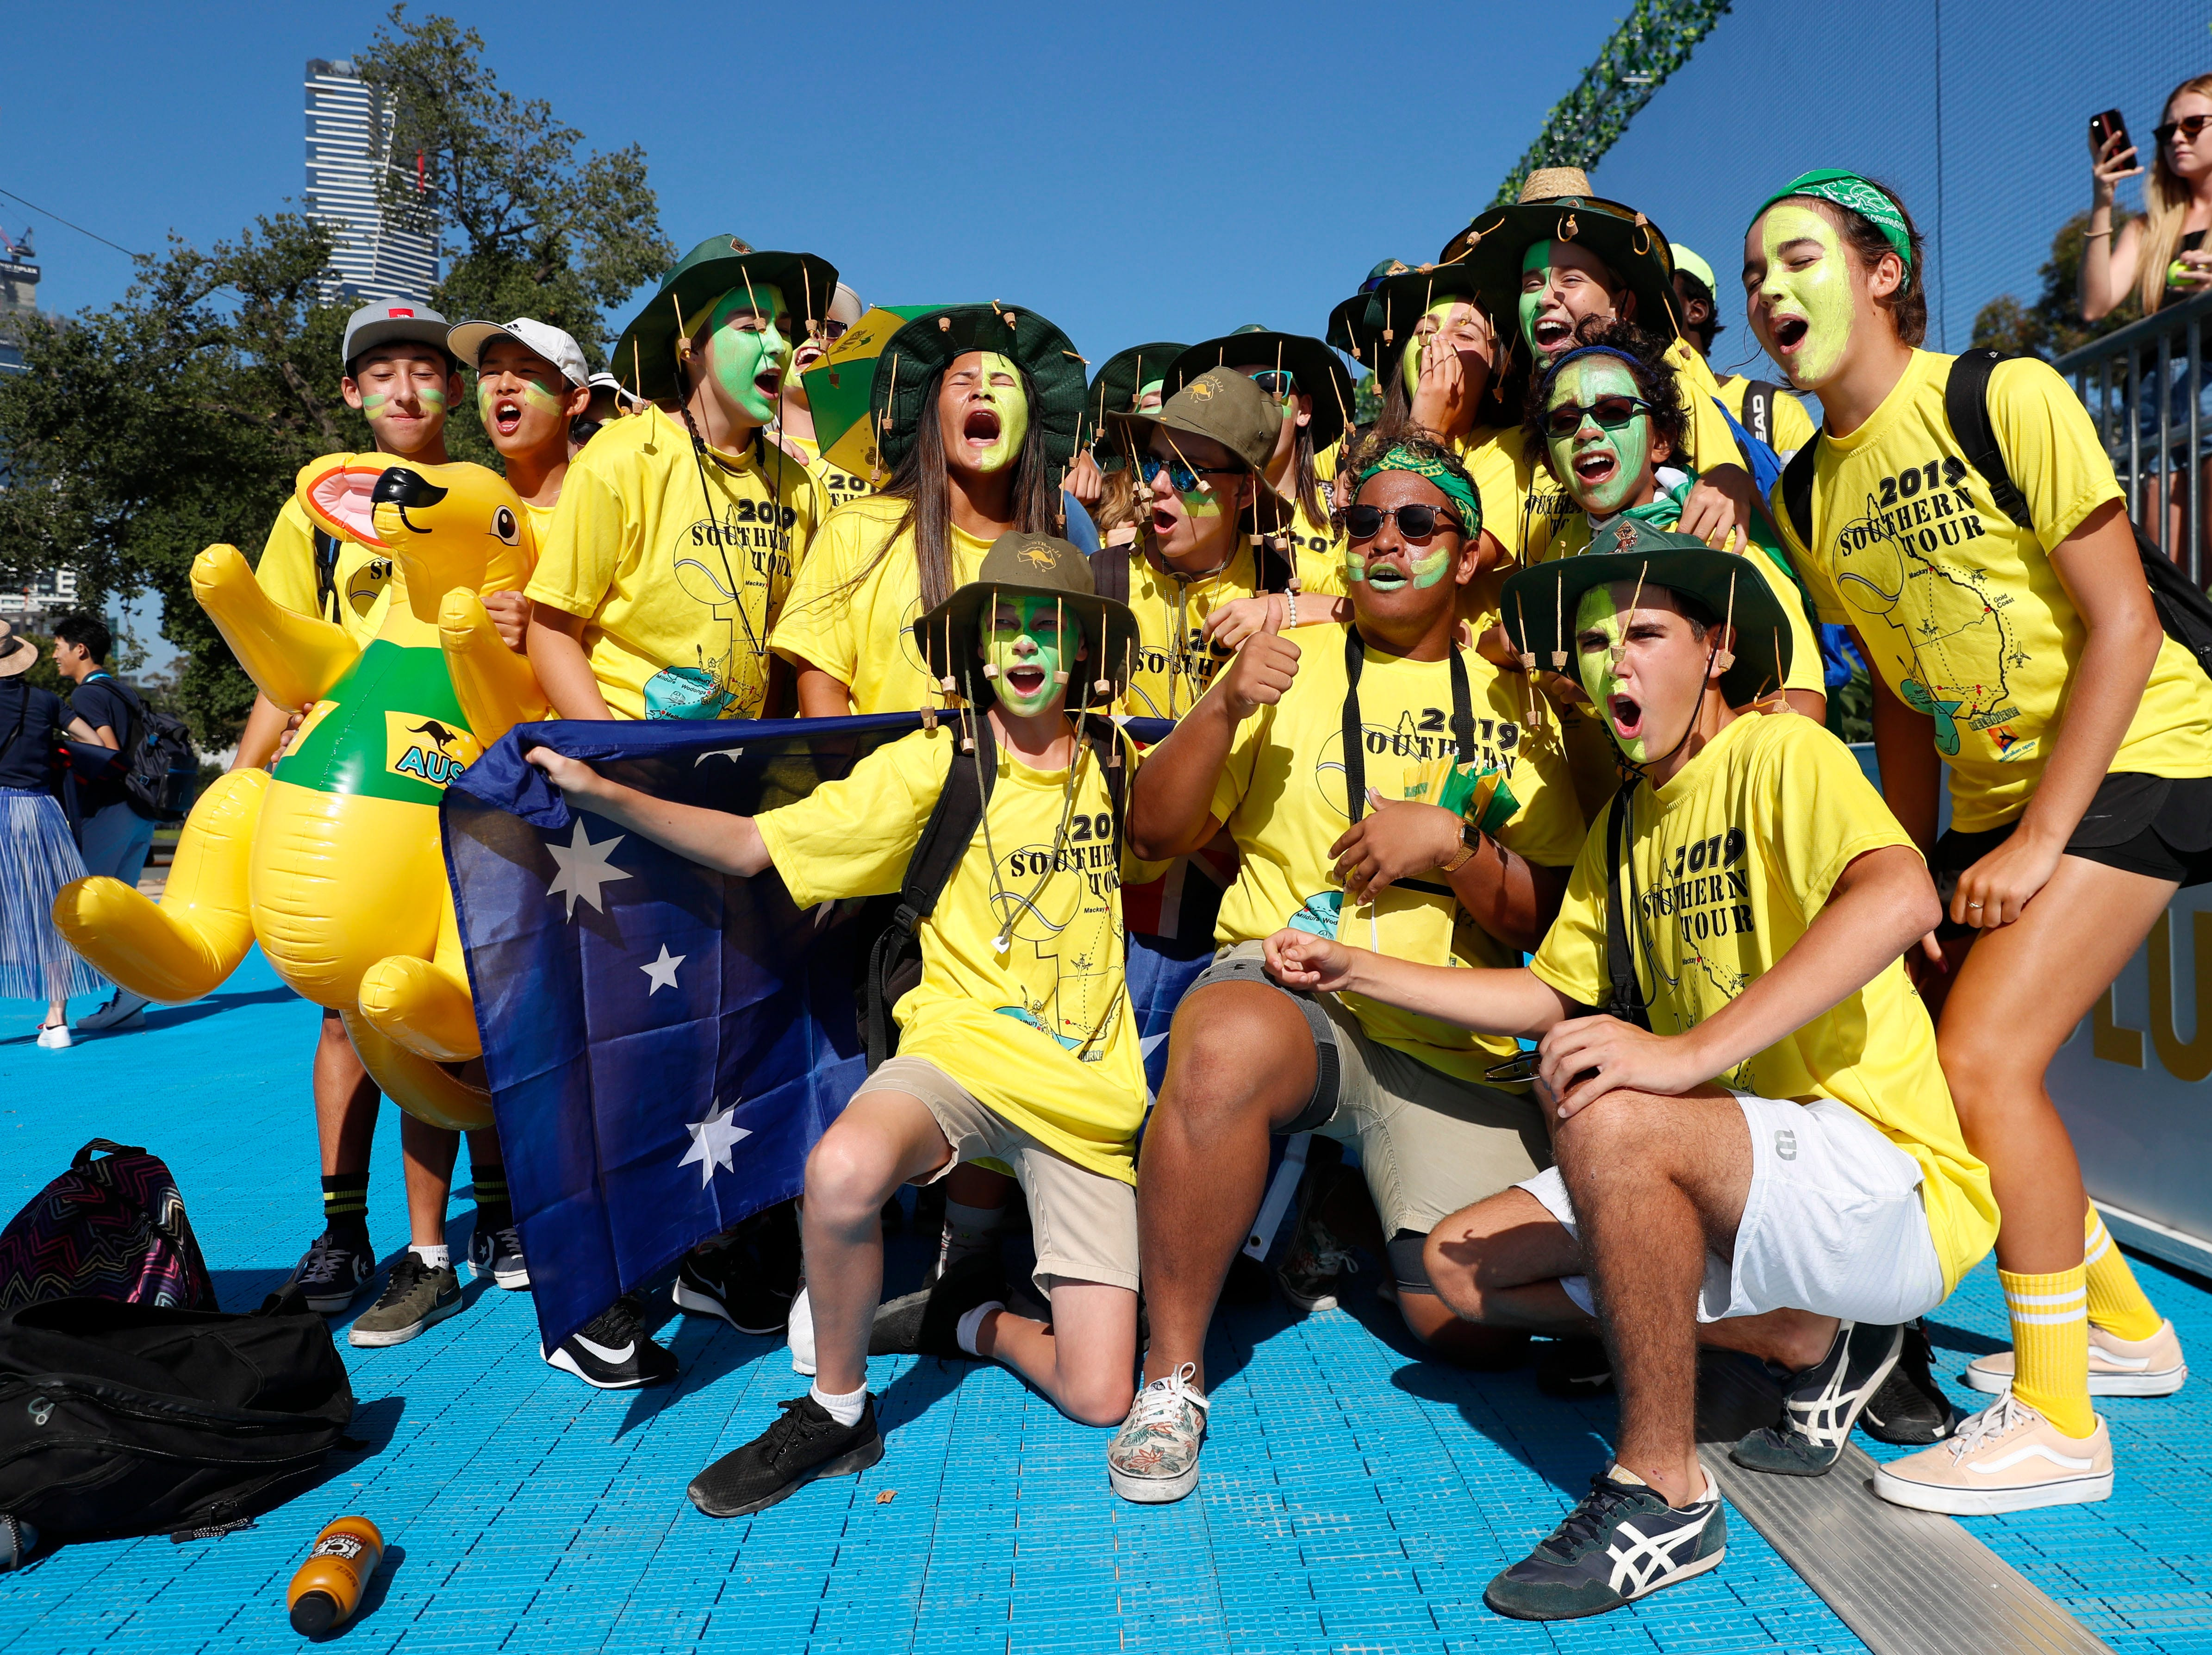 Australian tennis fans gear up for Day 1 of the tournament.